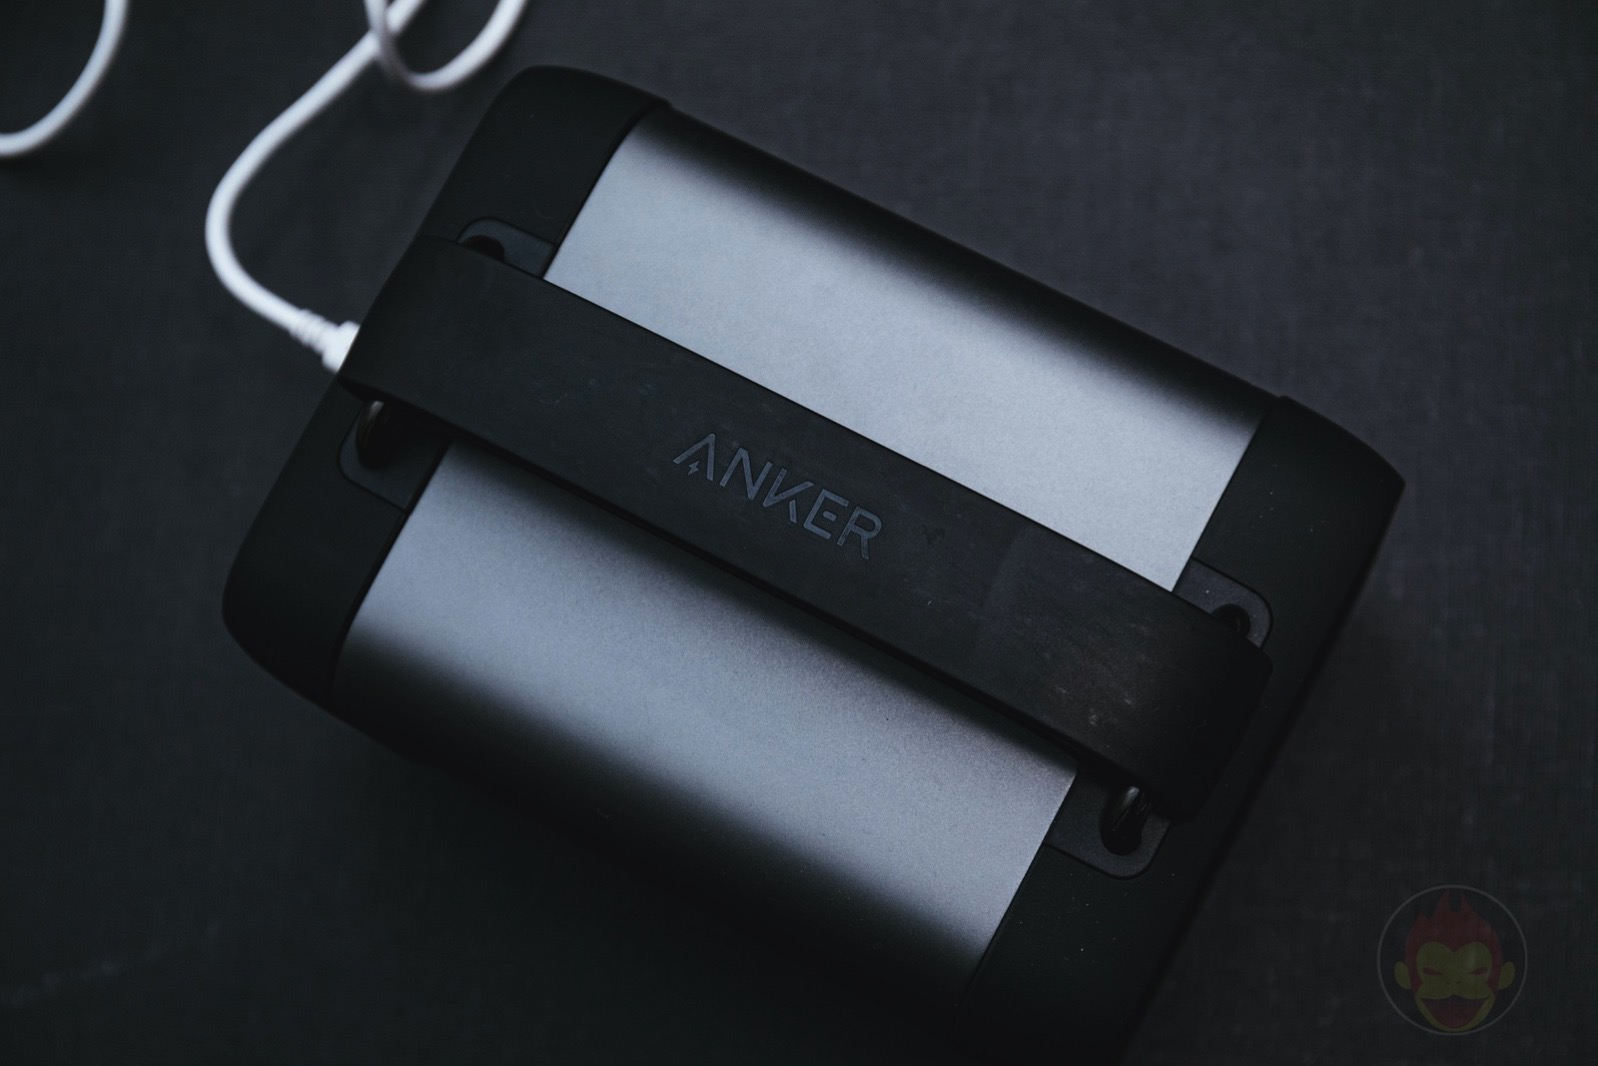 Anker-PowerHouse-200-Review-12.jpg